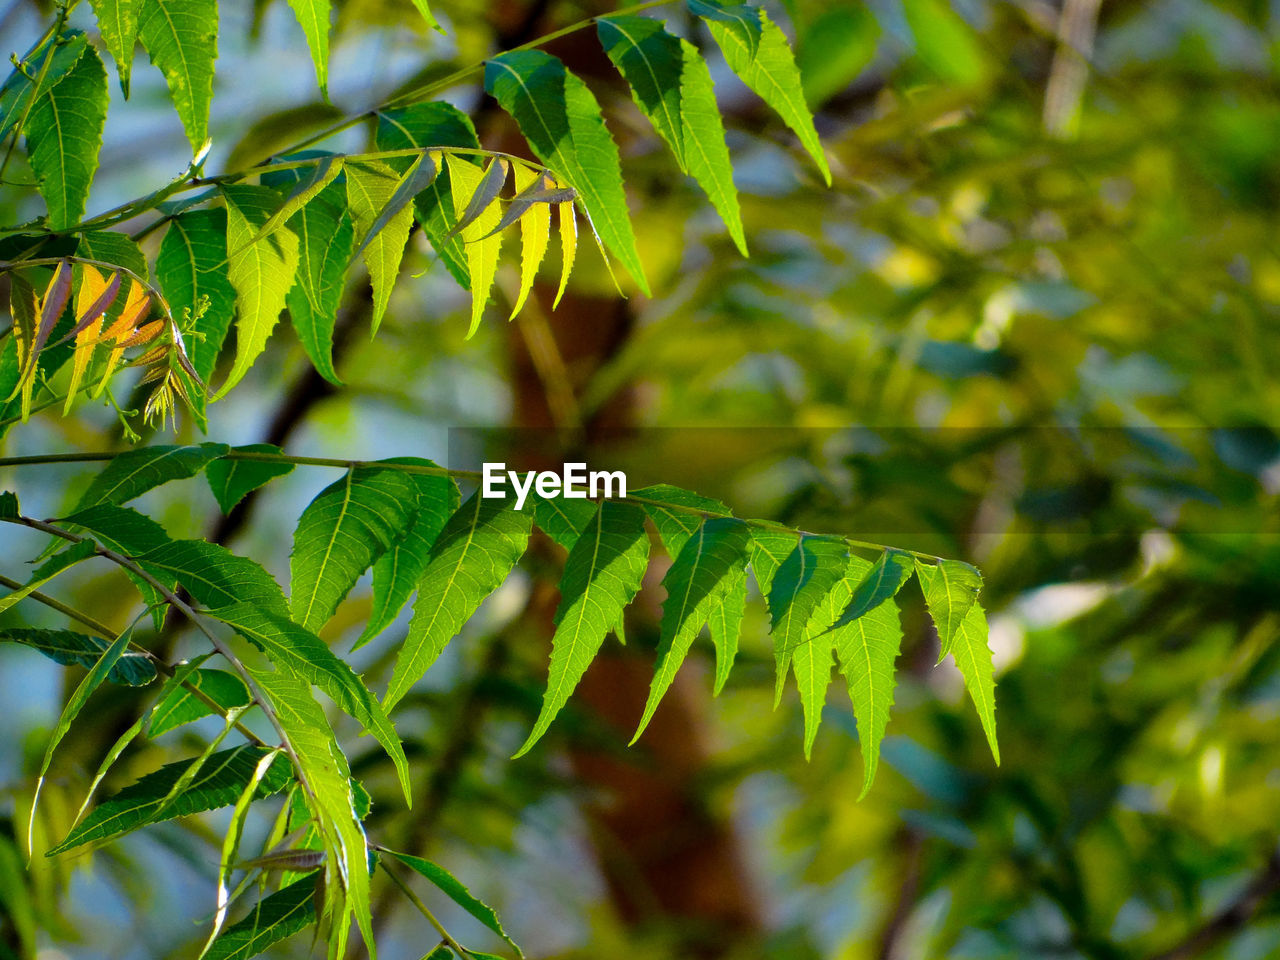 CLOSE-UP OF GREEN LEAVES ON TREE